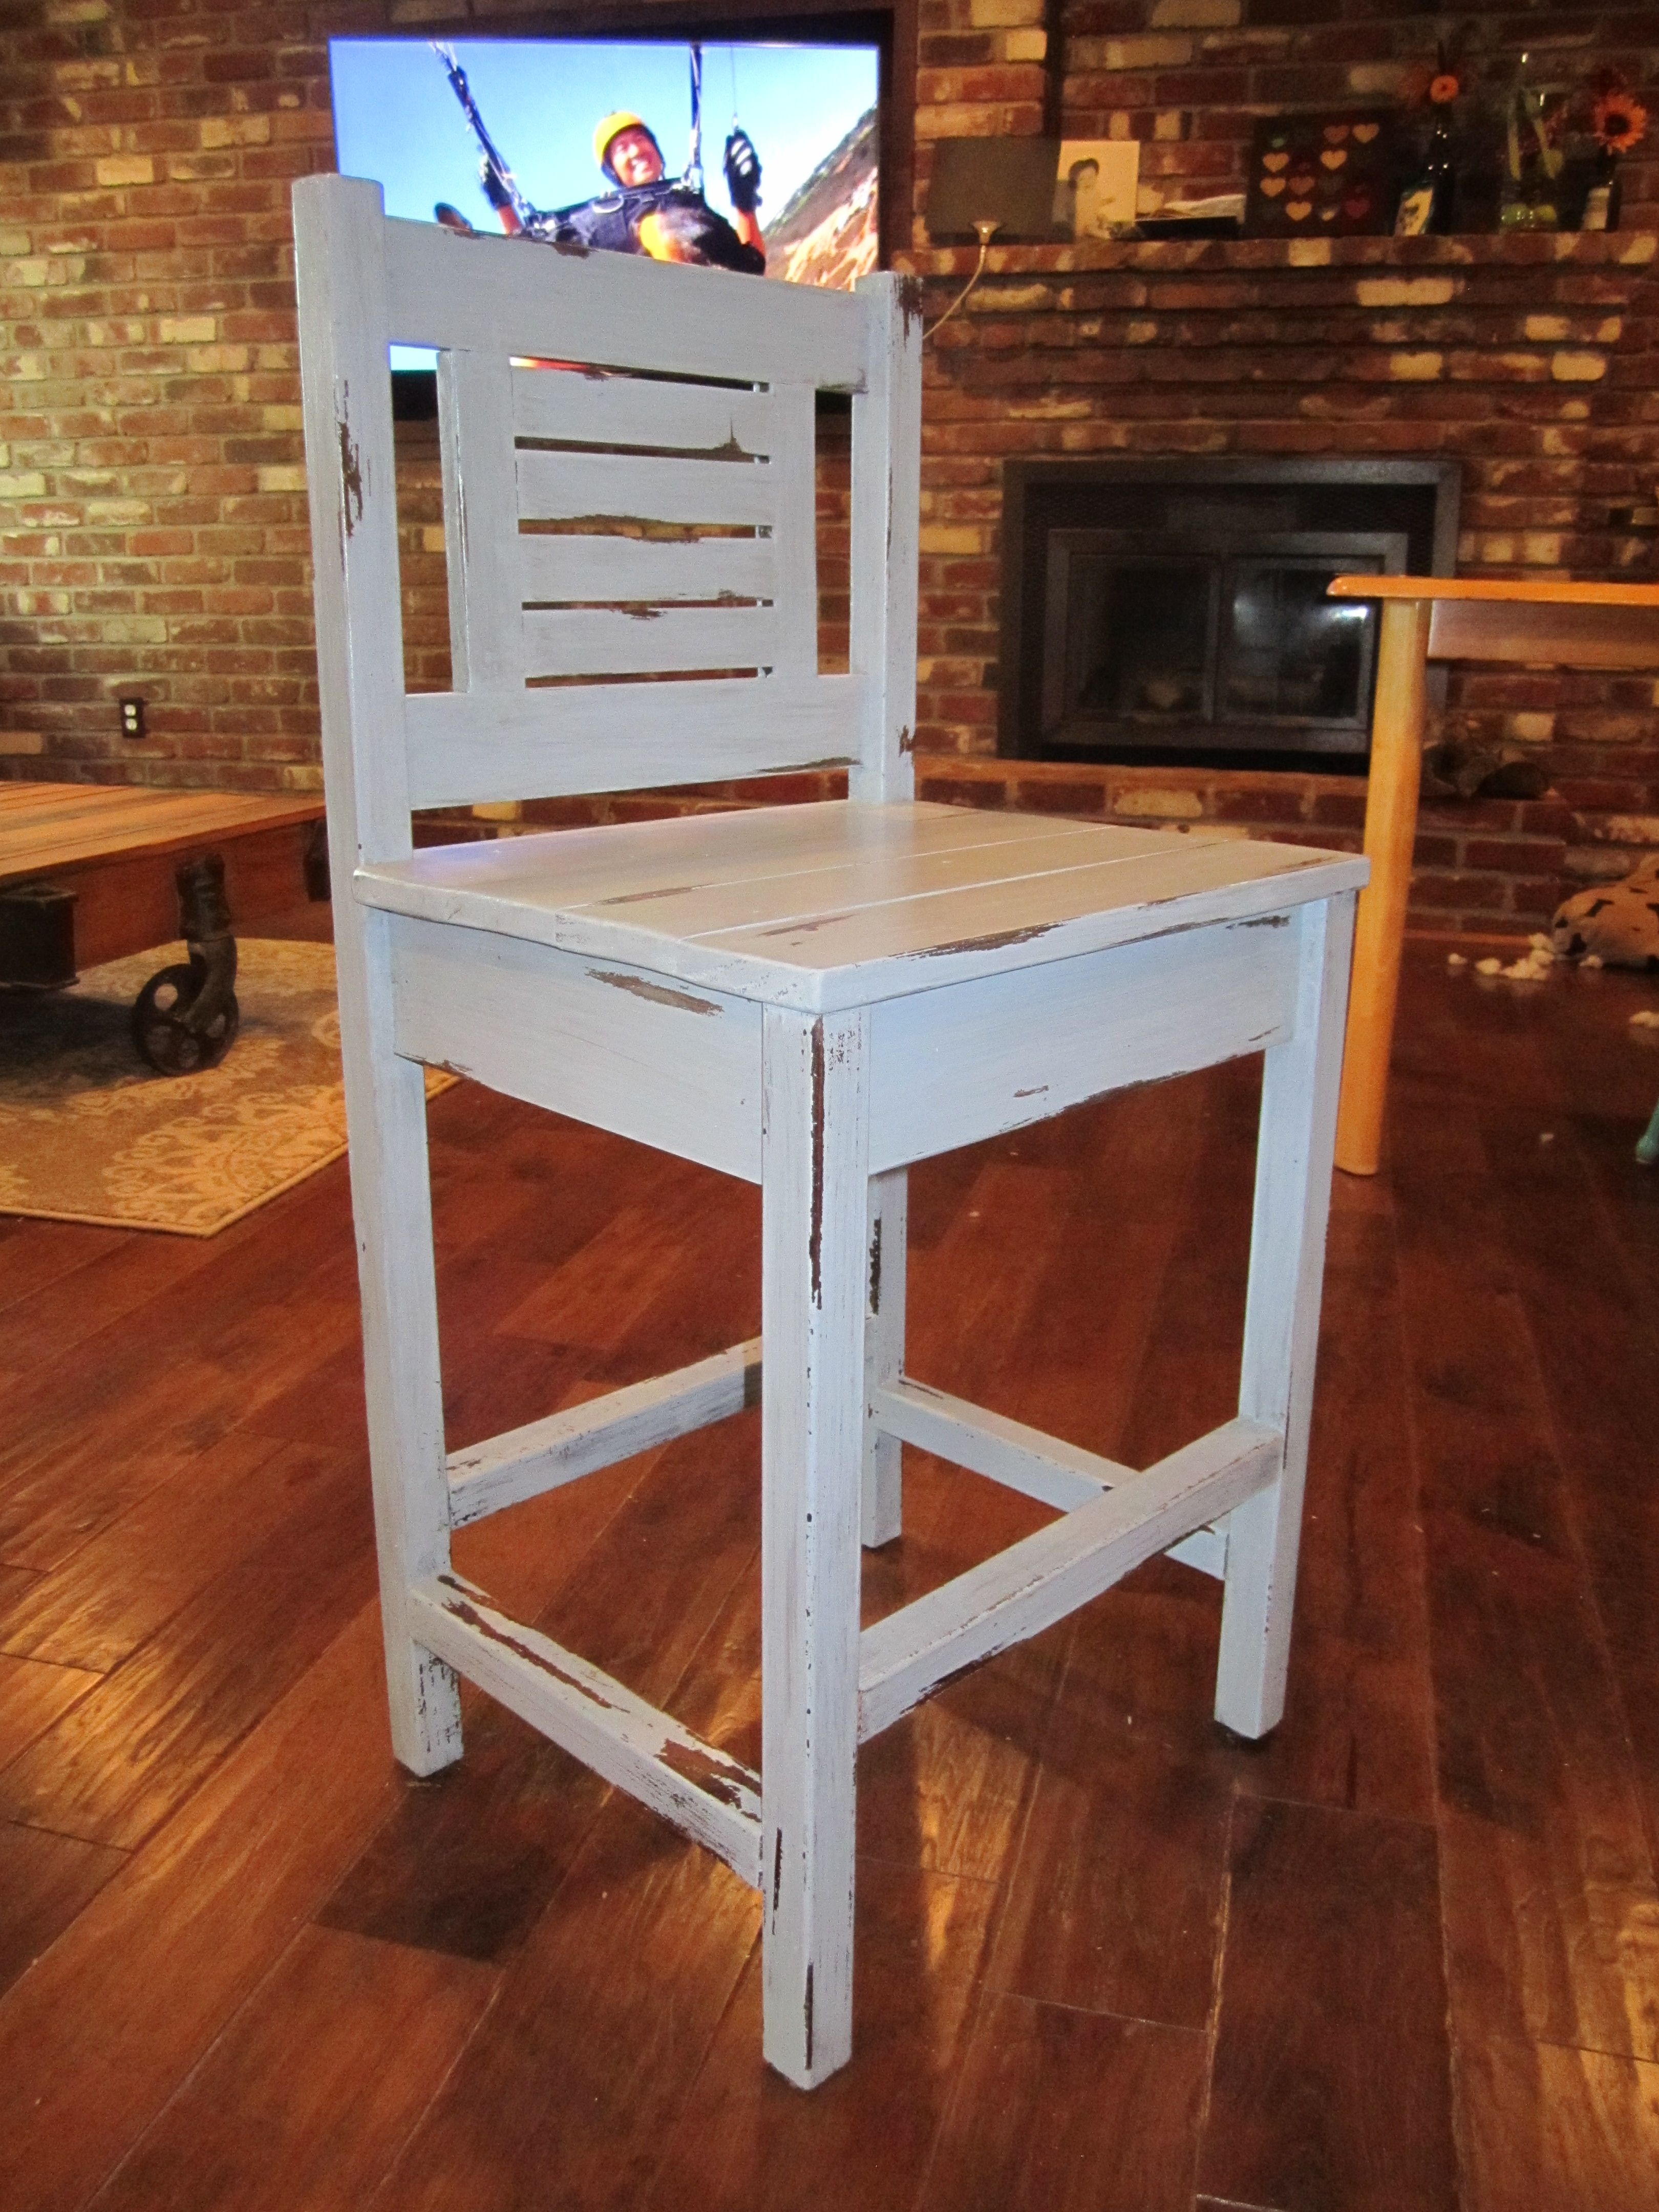 Bar stools do it yourself home projects from ana white diy bar stools do it yourself home projects from ana white solutioingenieria Images